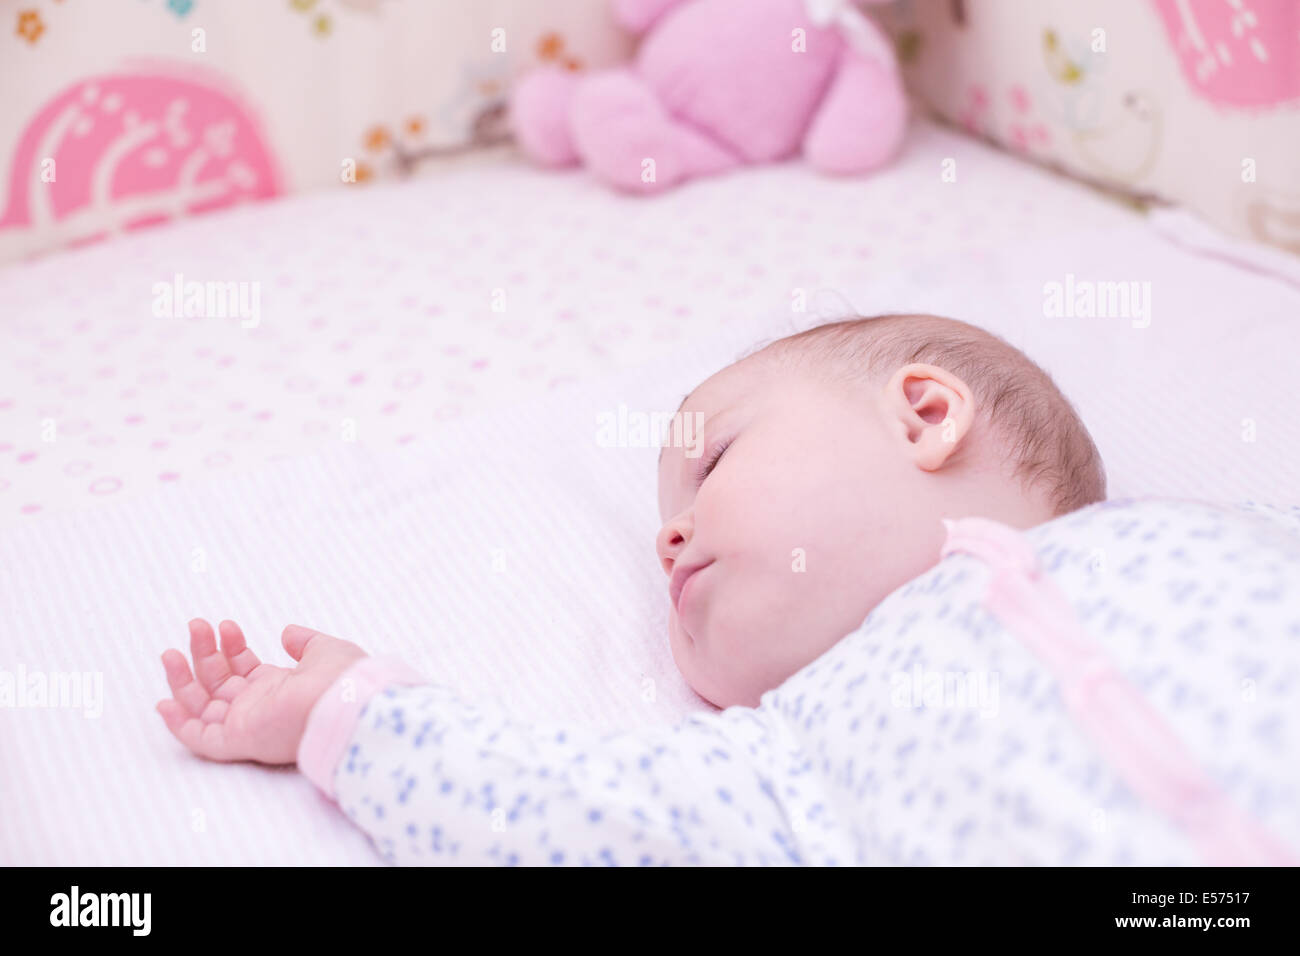 cute baby girl sleeping in her crib stock photo: 72072371 - alamy